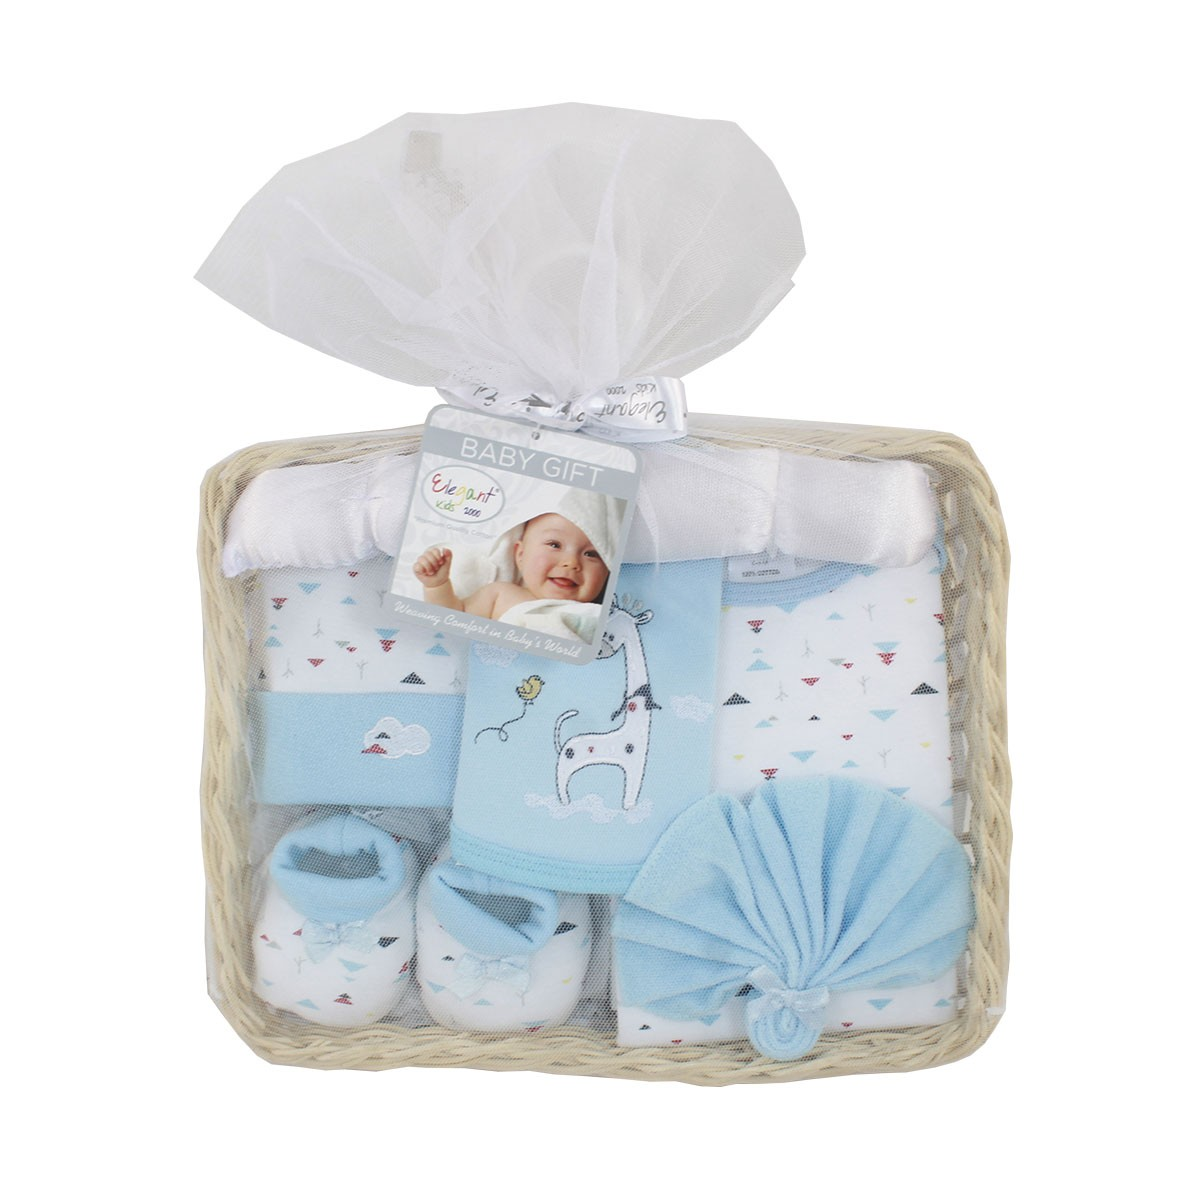 Diy do it yourself baby basket no5 for lilsoft baby diy do it yourself baby basket no5 solutioingenieria Image collections